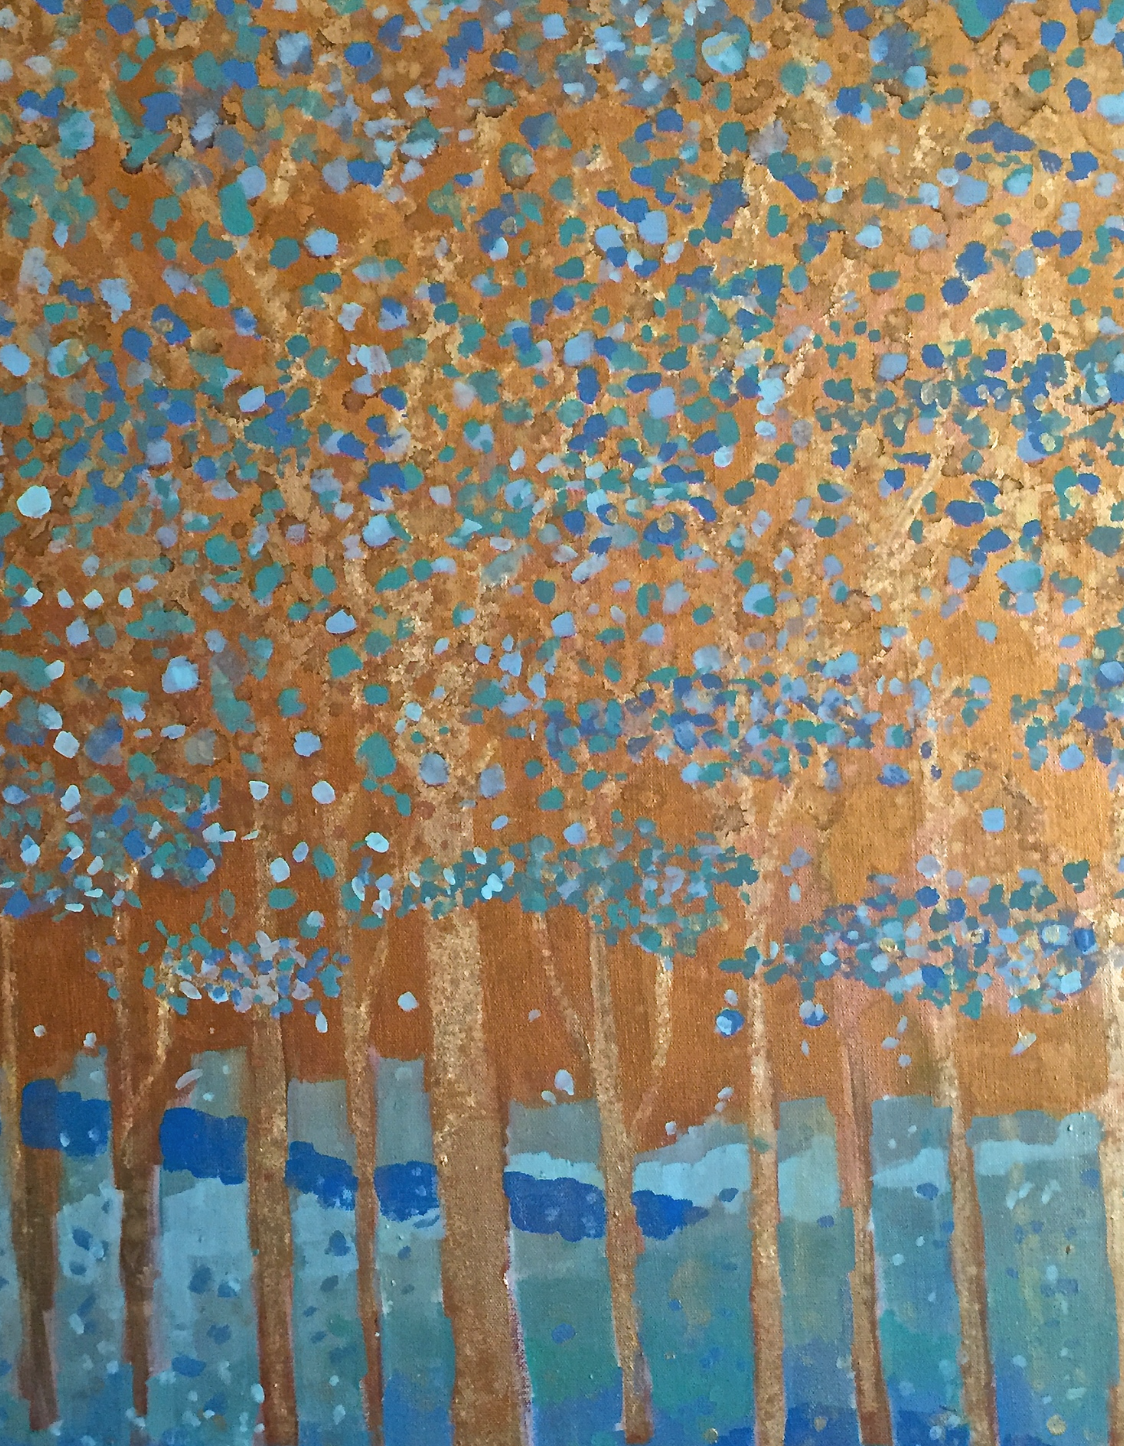 Title: Robin's Forest